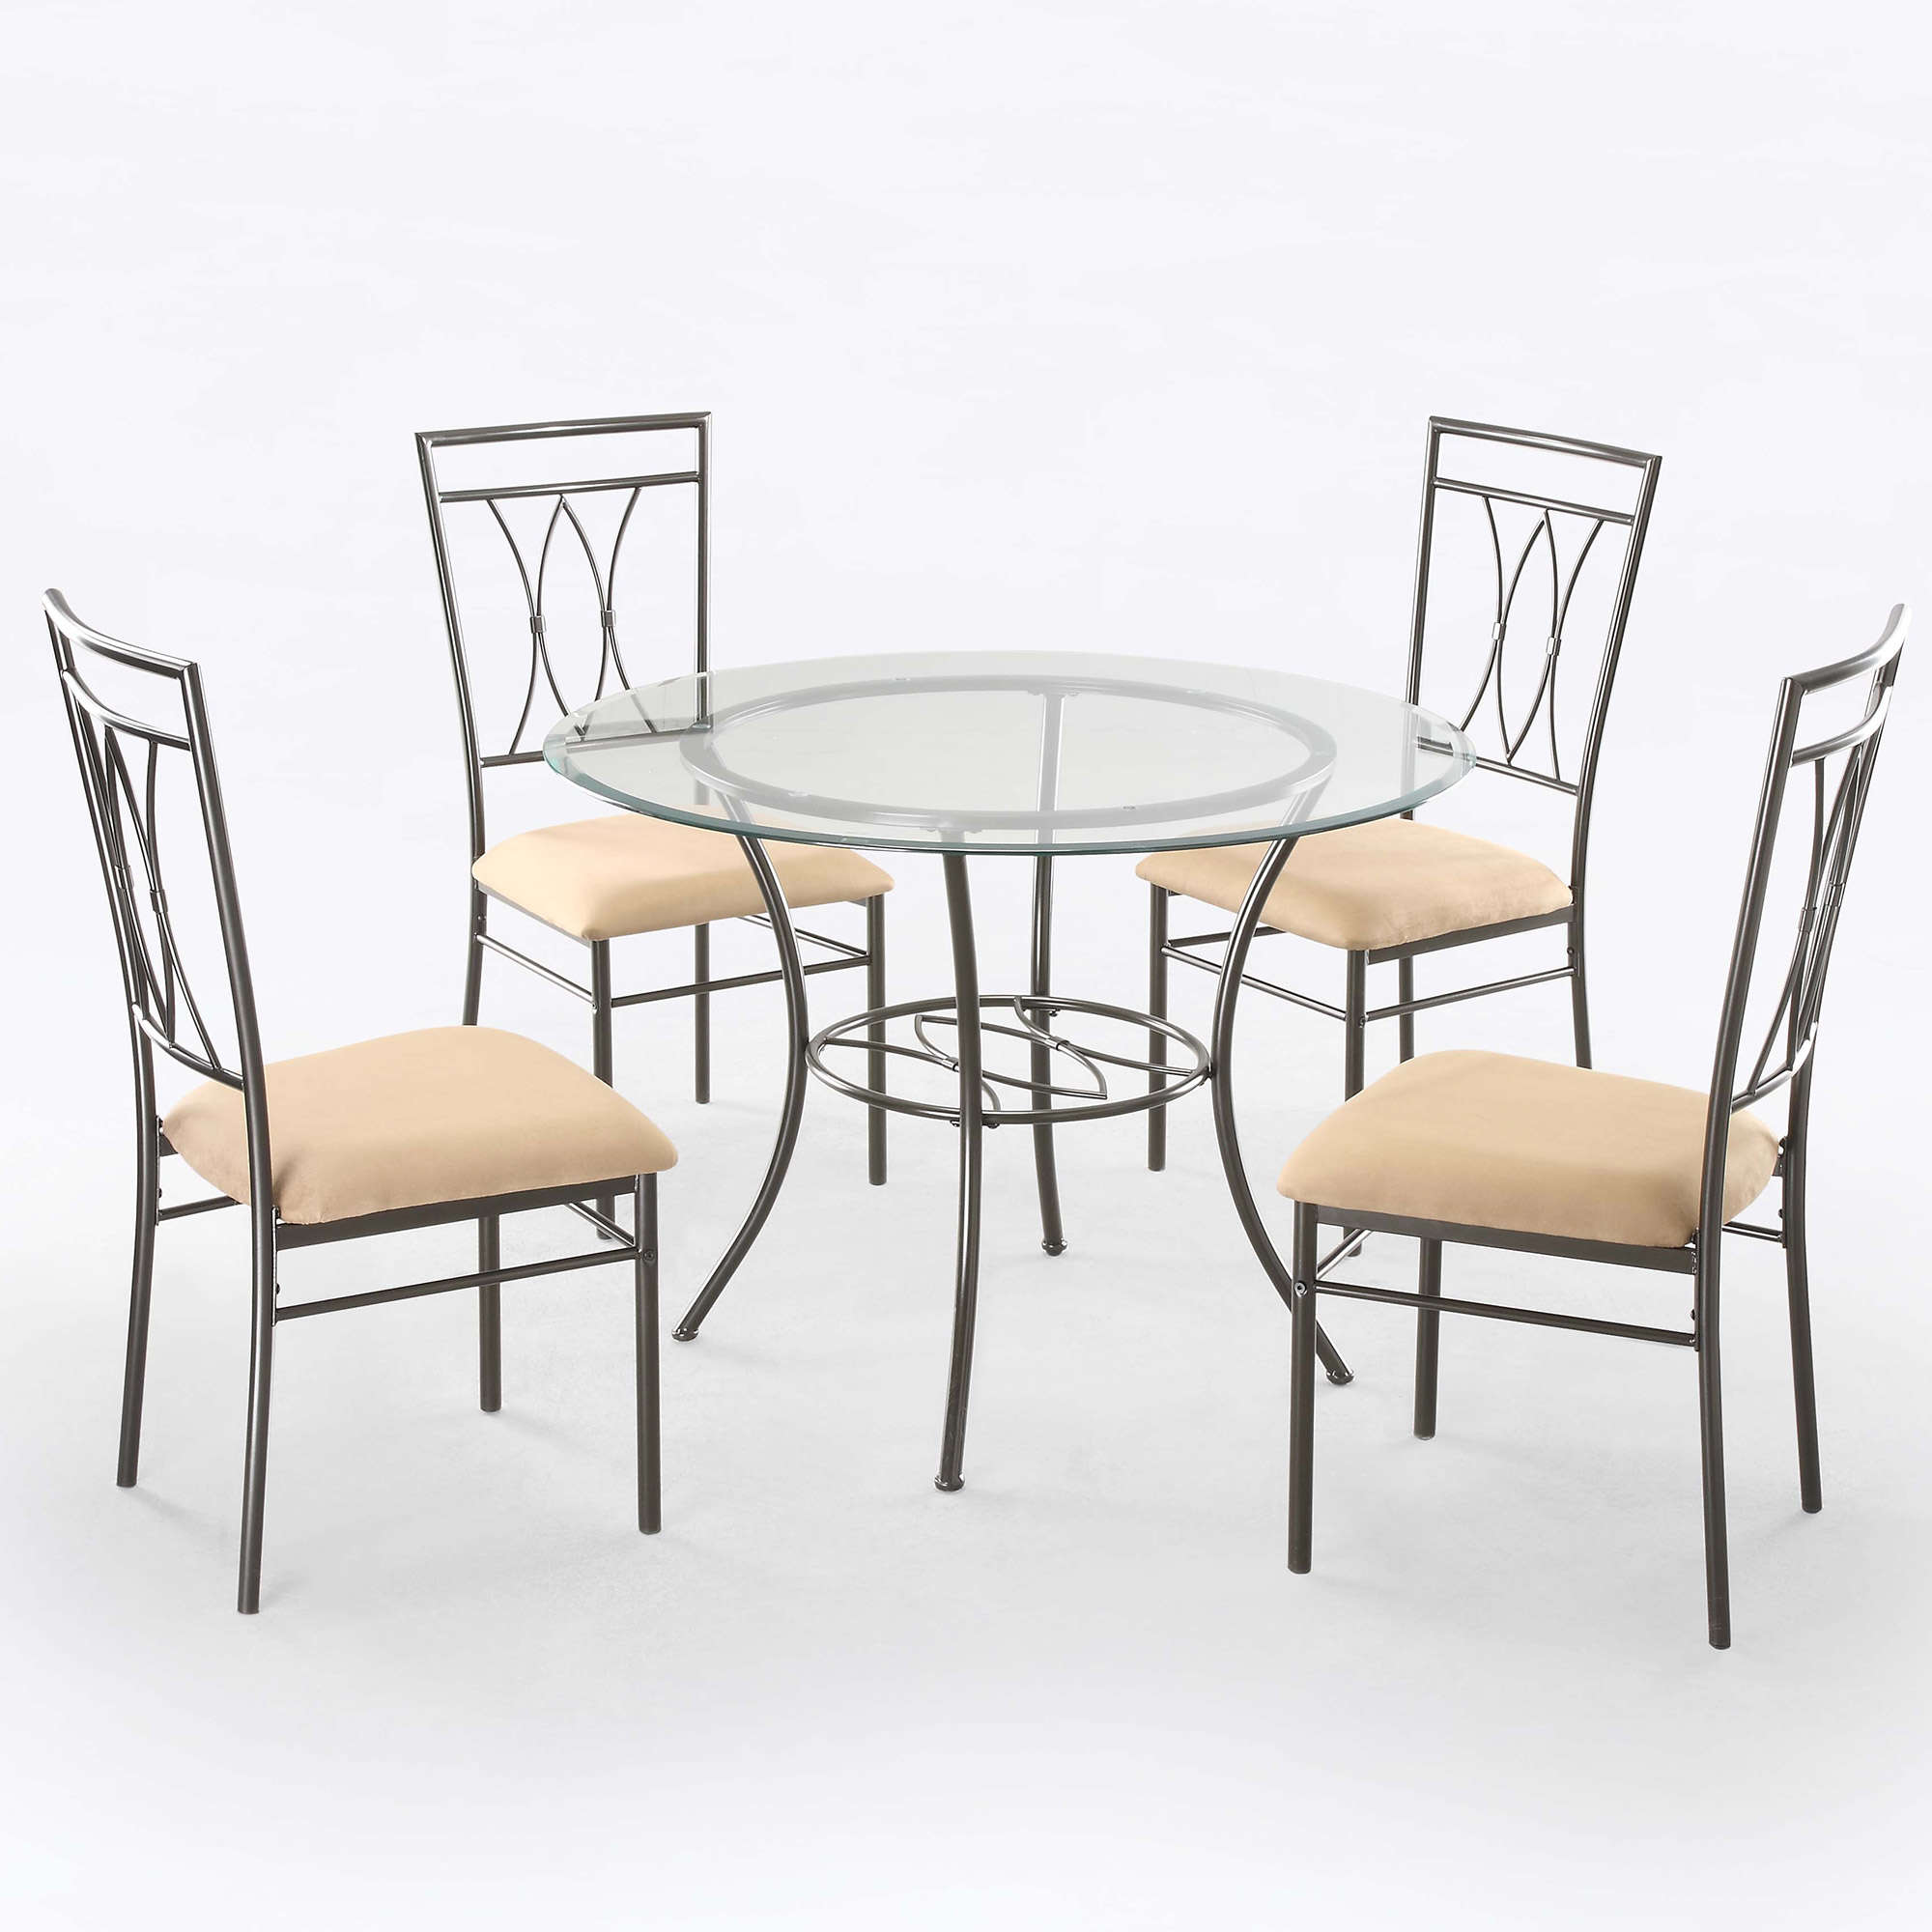 """Mainstays 5-Piece Glass and Metal Dining Room Set, 42"""" Round Tabletop by Dongguan Sheng Nan Furniture Co.,Ltd"""